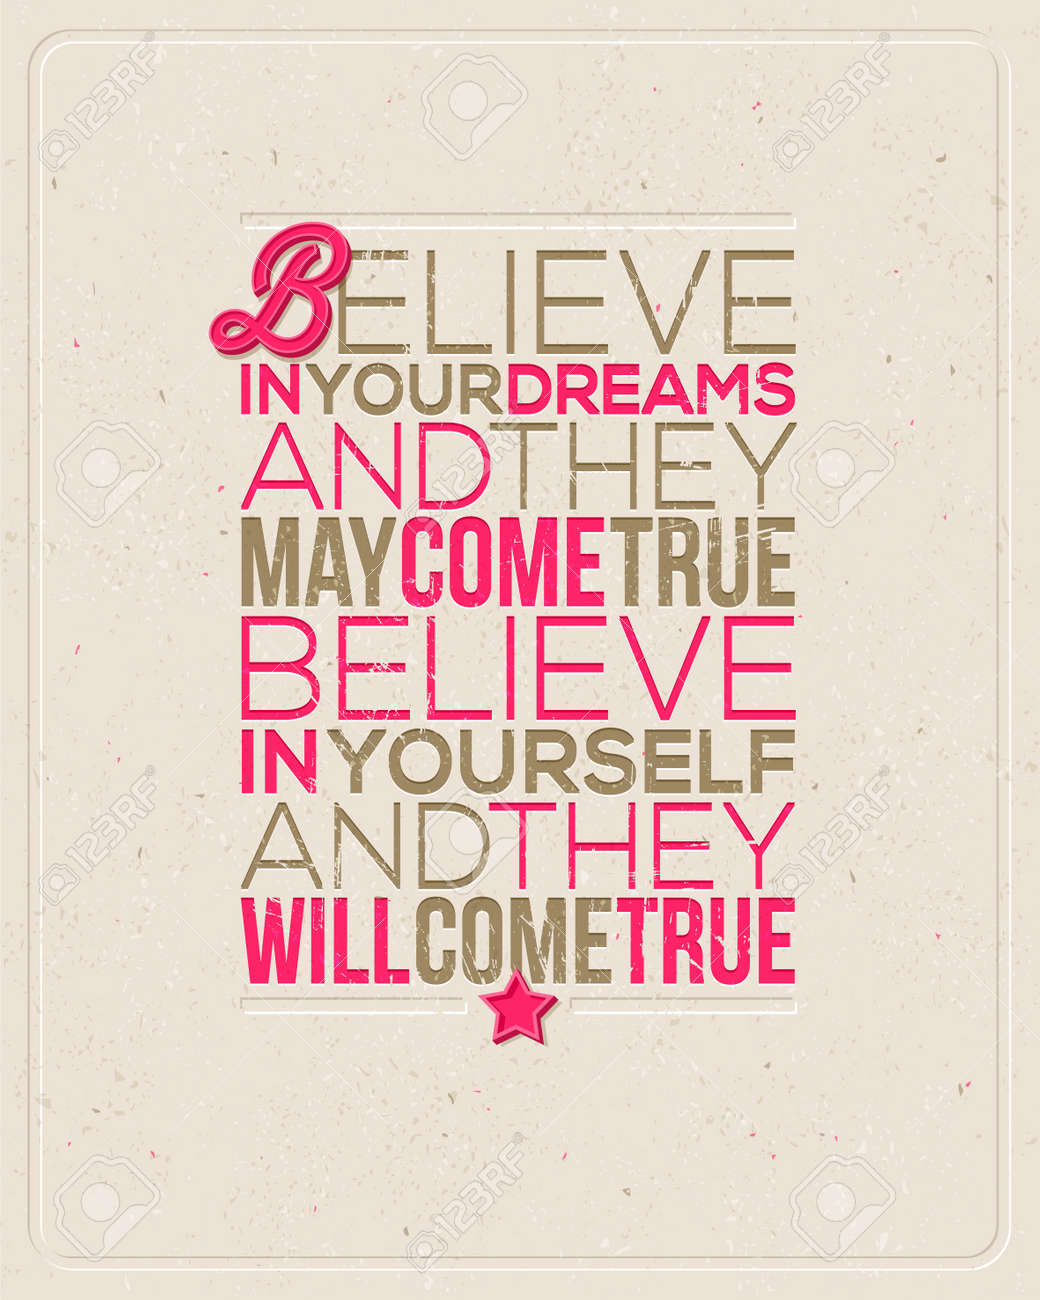 Motivating Quotes -  Believe in your dreams and they may come true  Believe in yourself and they will come true   - Typographical vector design Stock Vector - 25436084